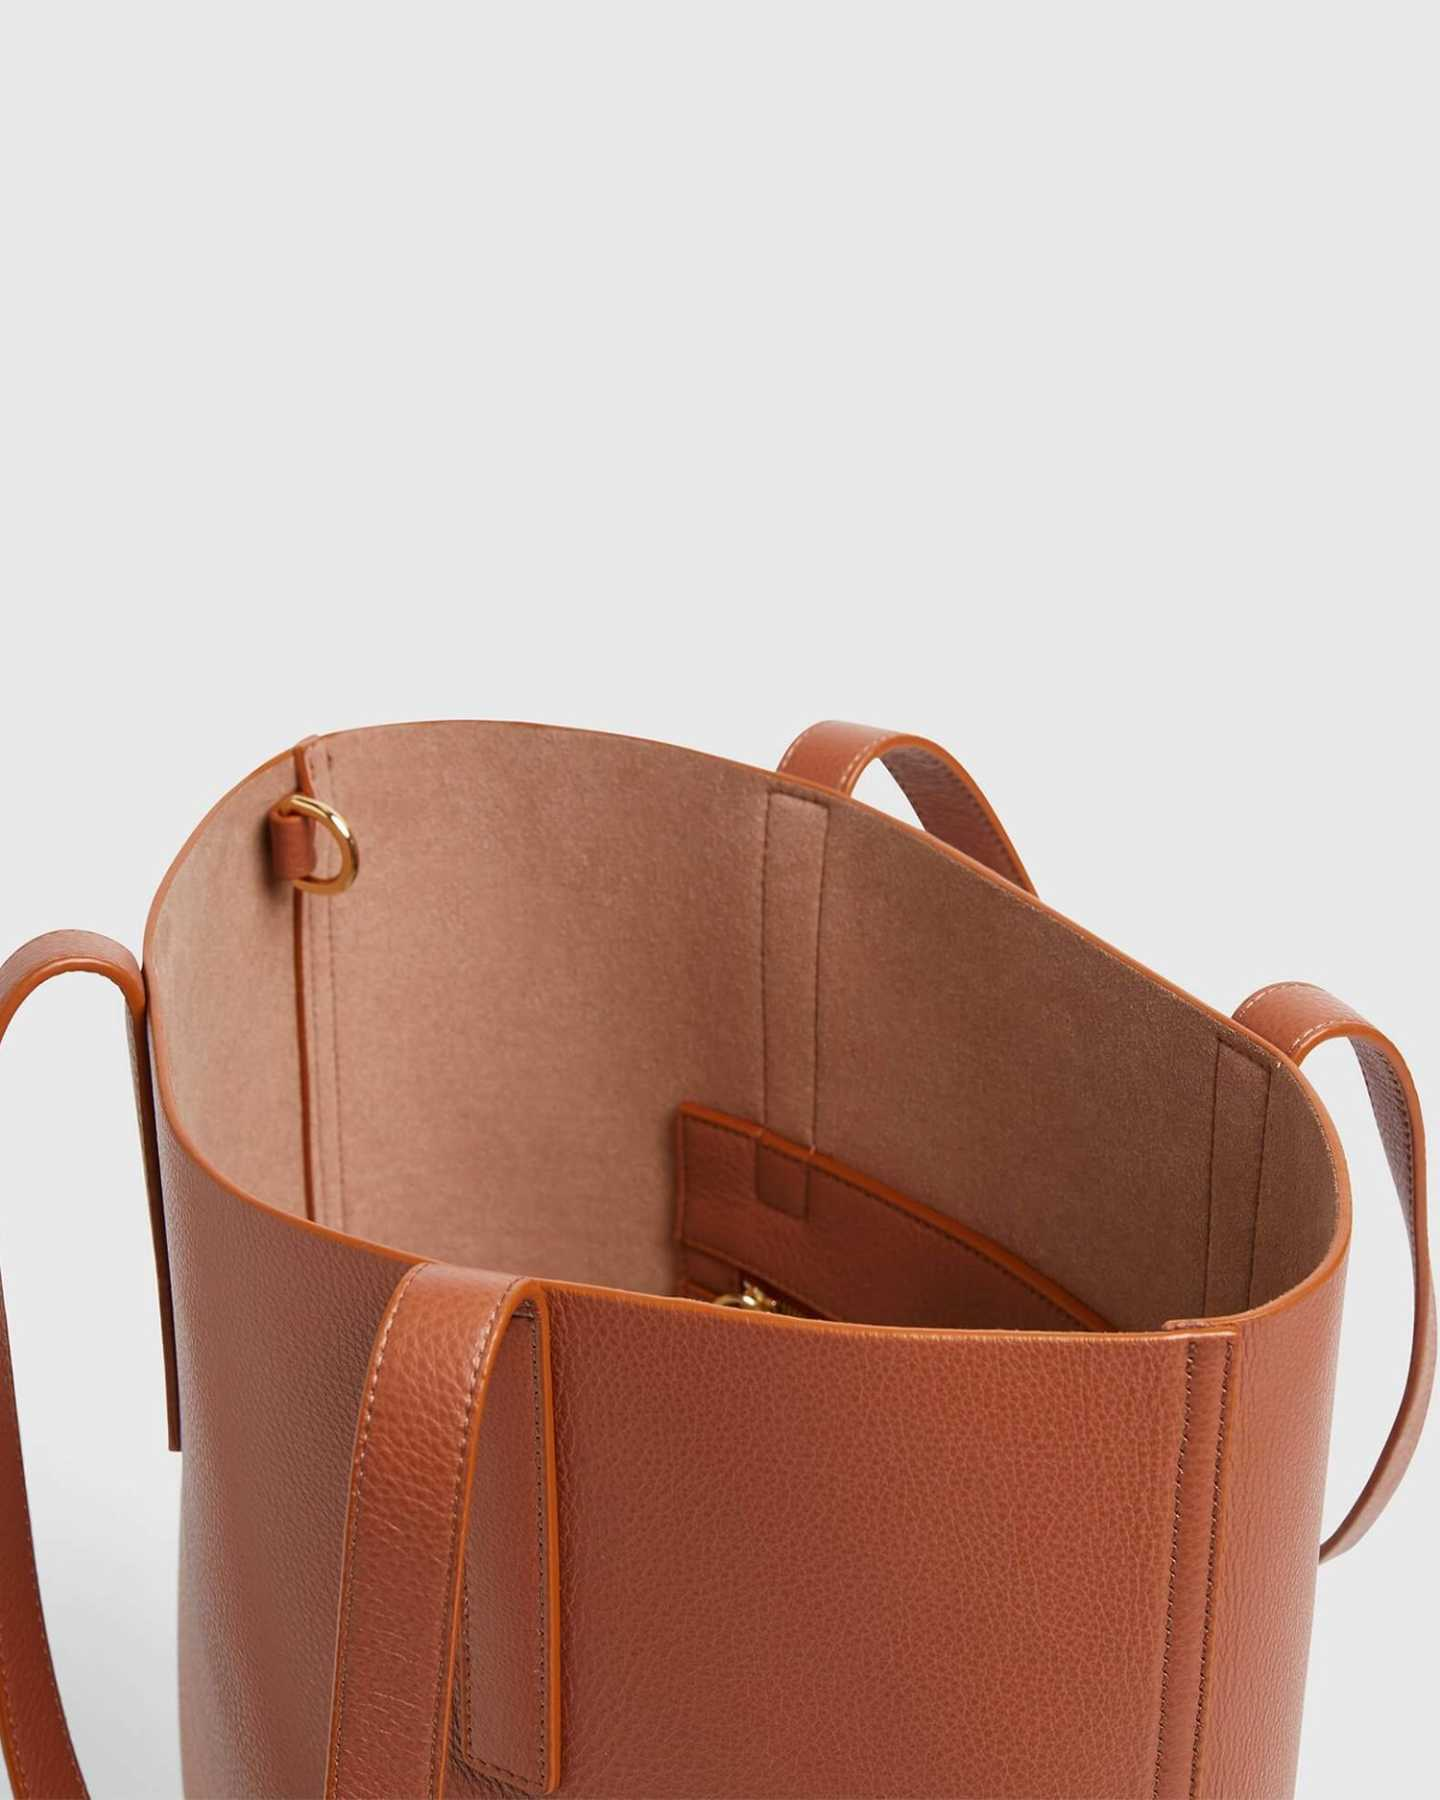 Tall Italian Leather Tote - Cognac - 4